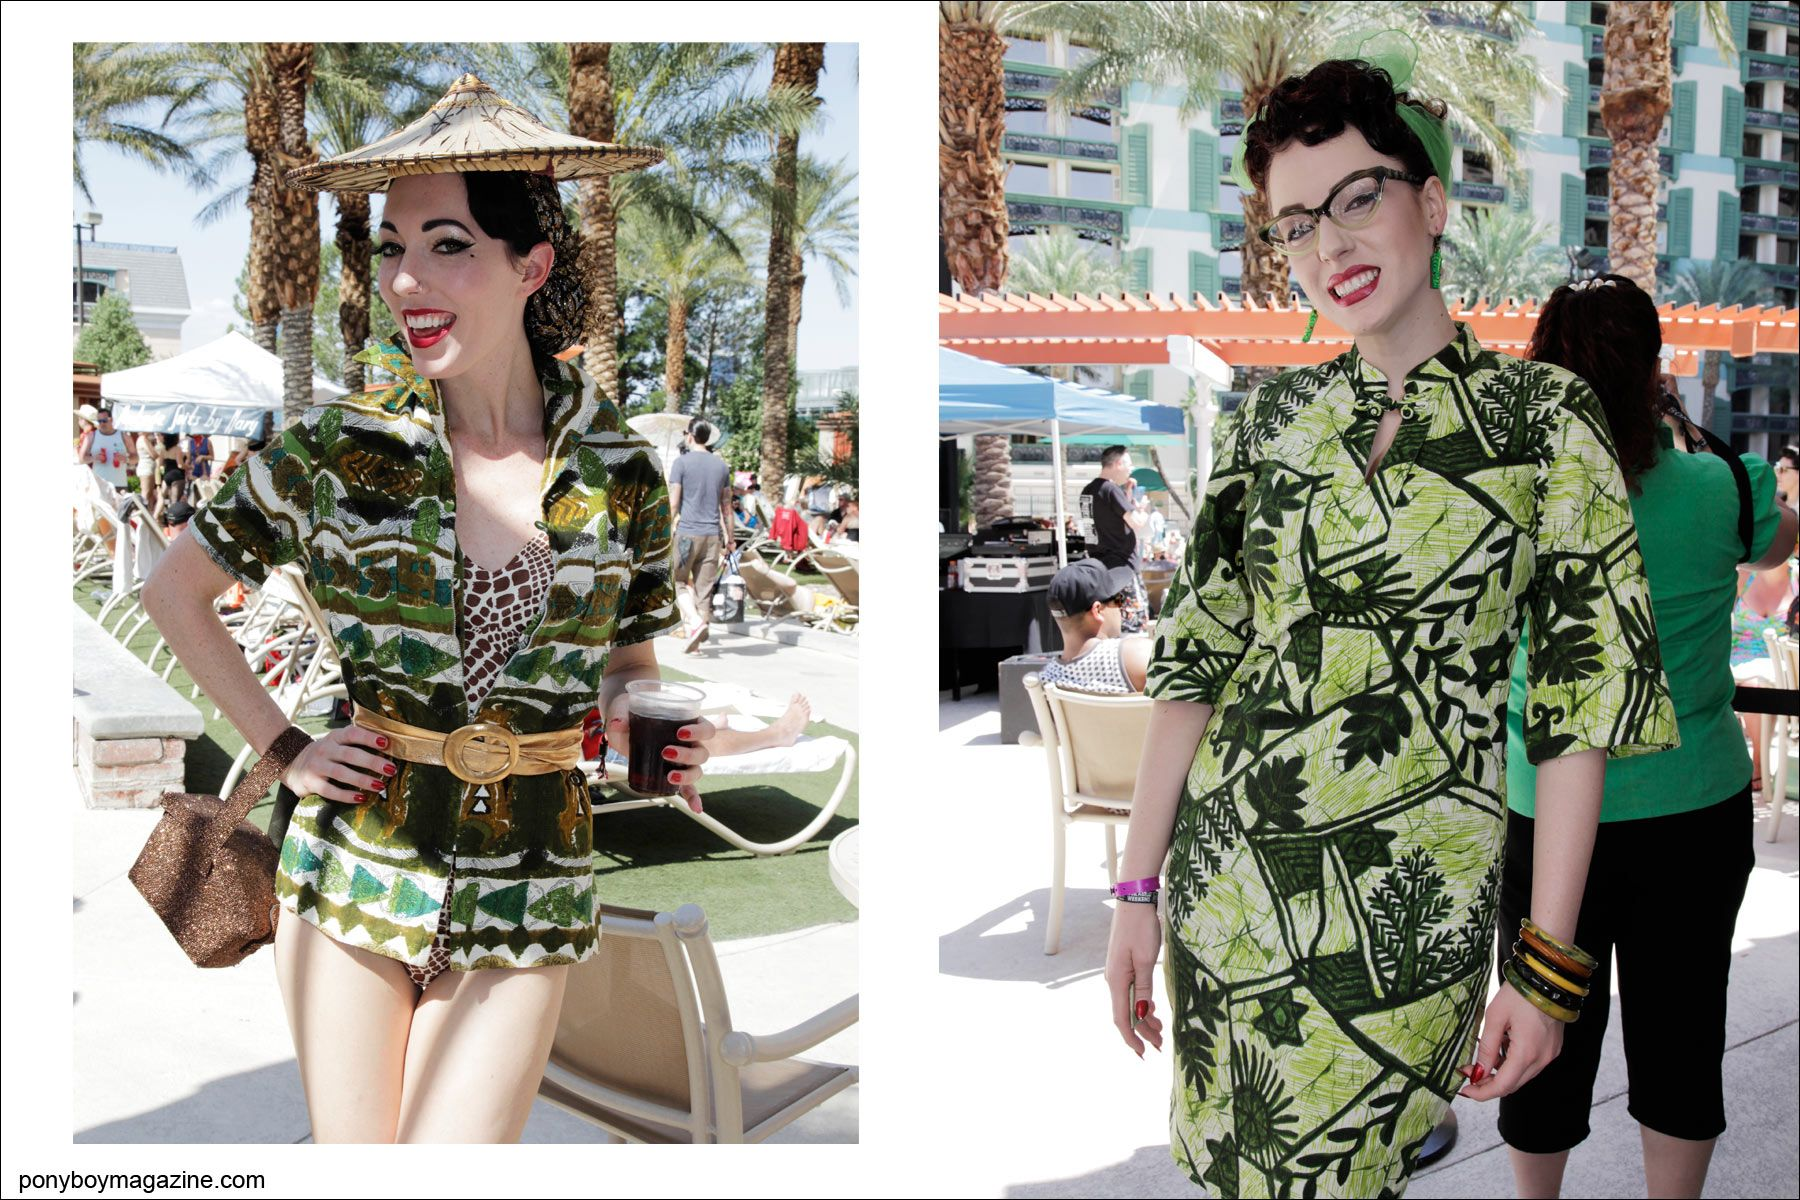 1950's style women's vintage pool cover-ups, photographed at rockabilly weekender Viva Las Vegas 17 by Alexander Thompson for Ponyboy Magazine.